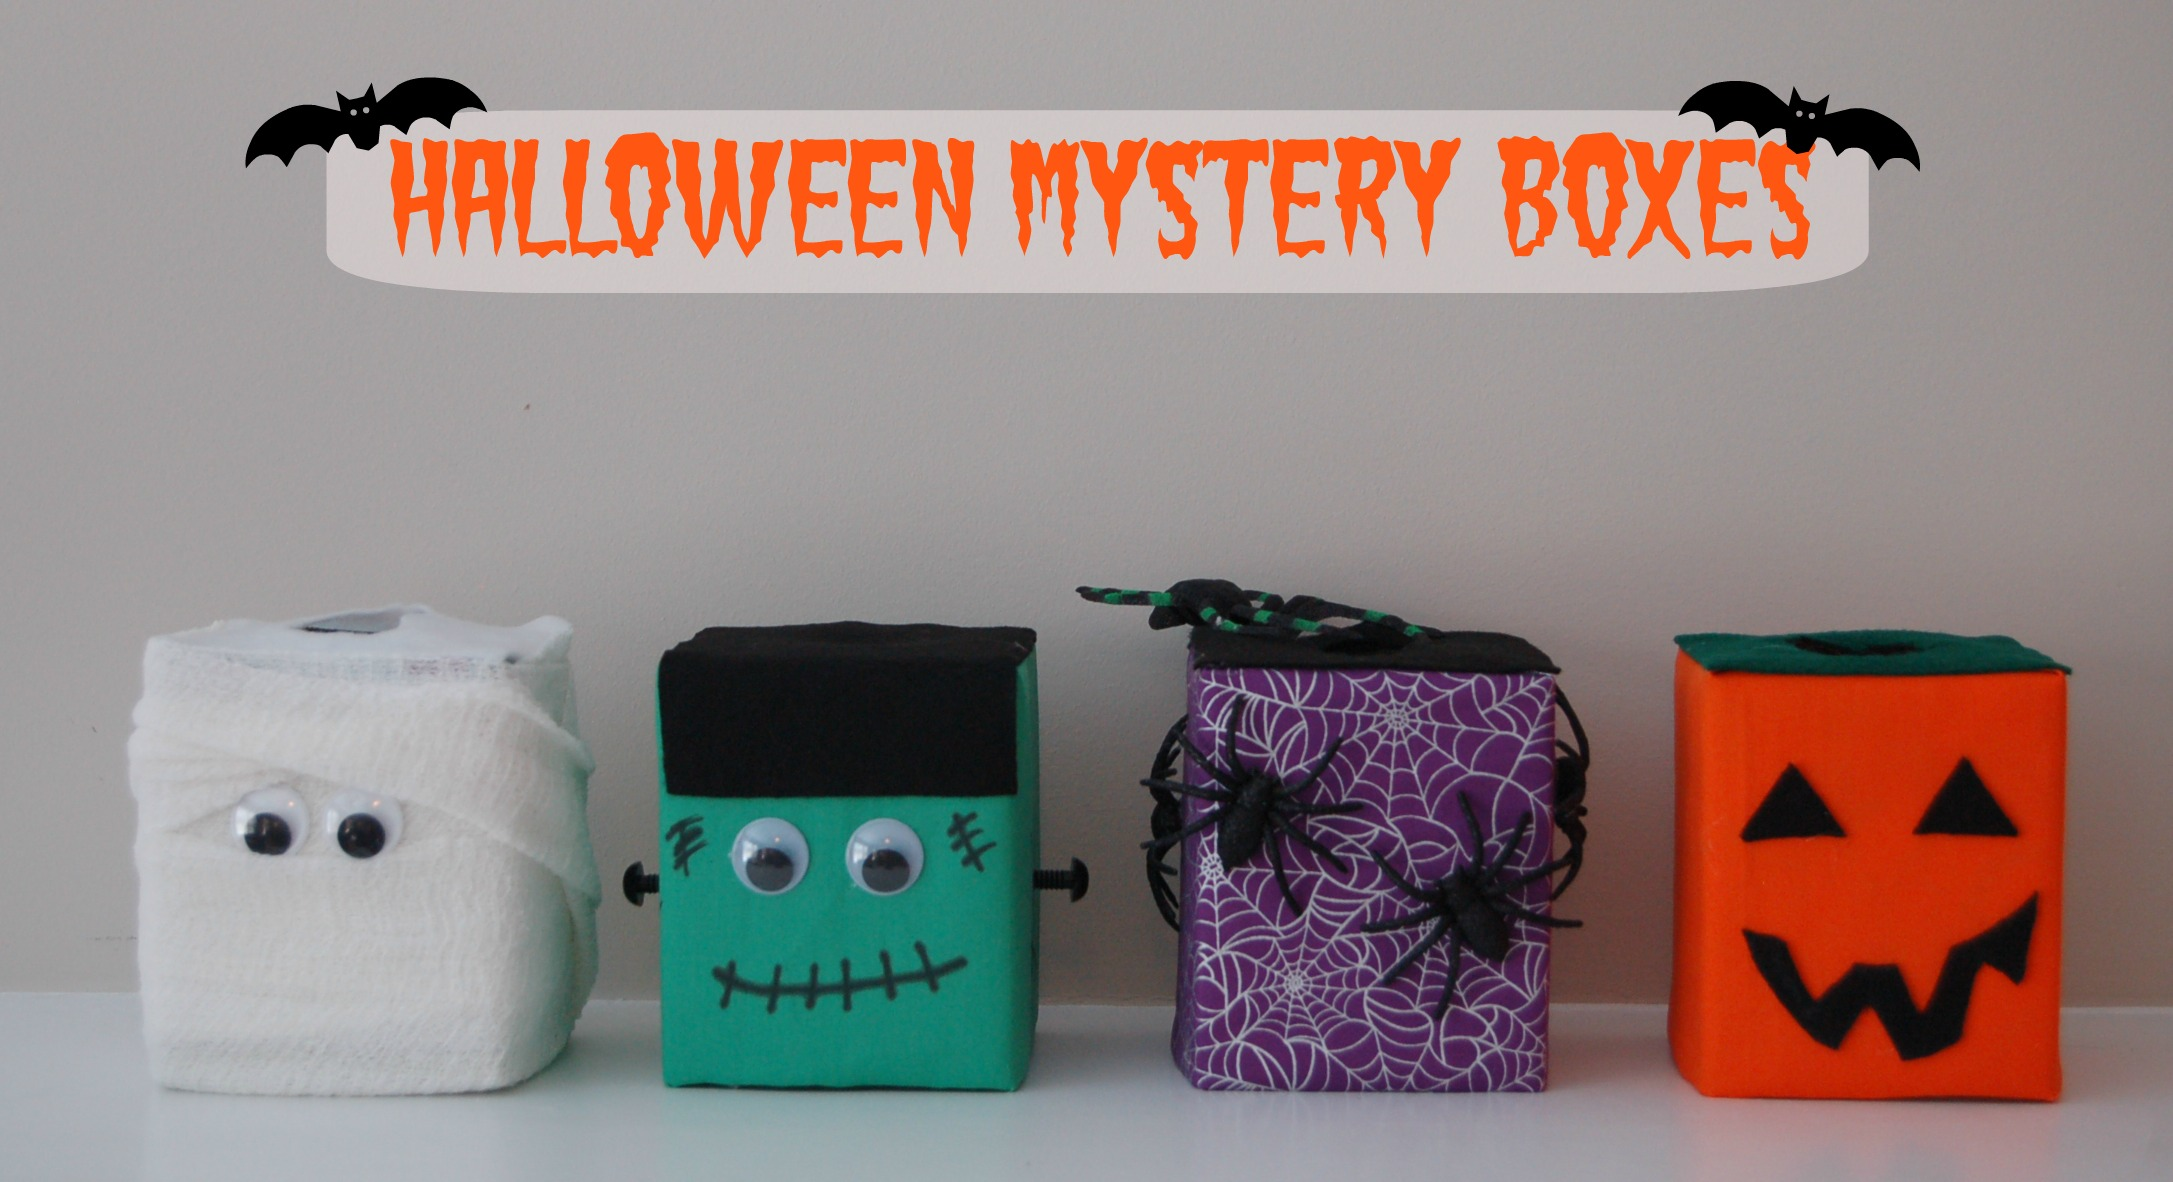 mystery box header - Halloween Fear Factor Games